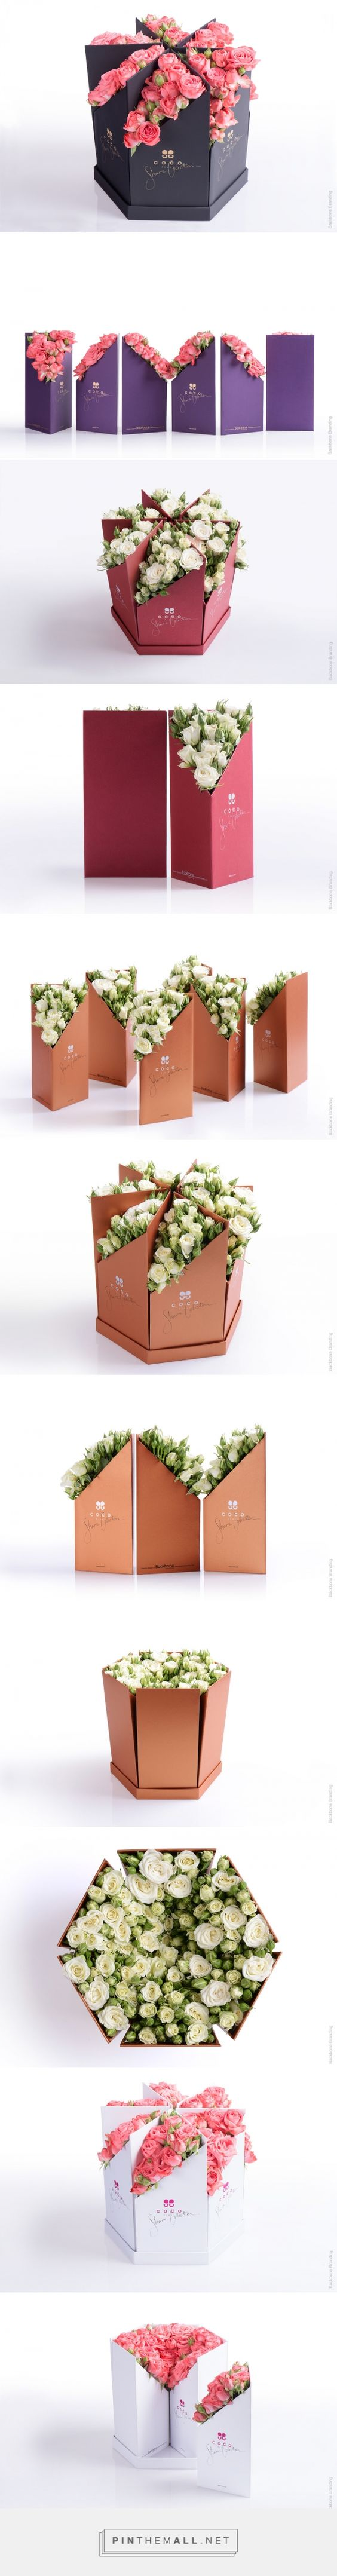 Coco Fiori by Backbone Branding. Source: World Packaging Design. Pin curated by #SFields99 #packaging #design